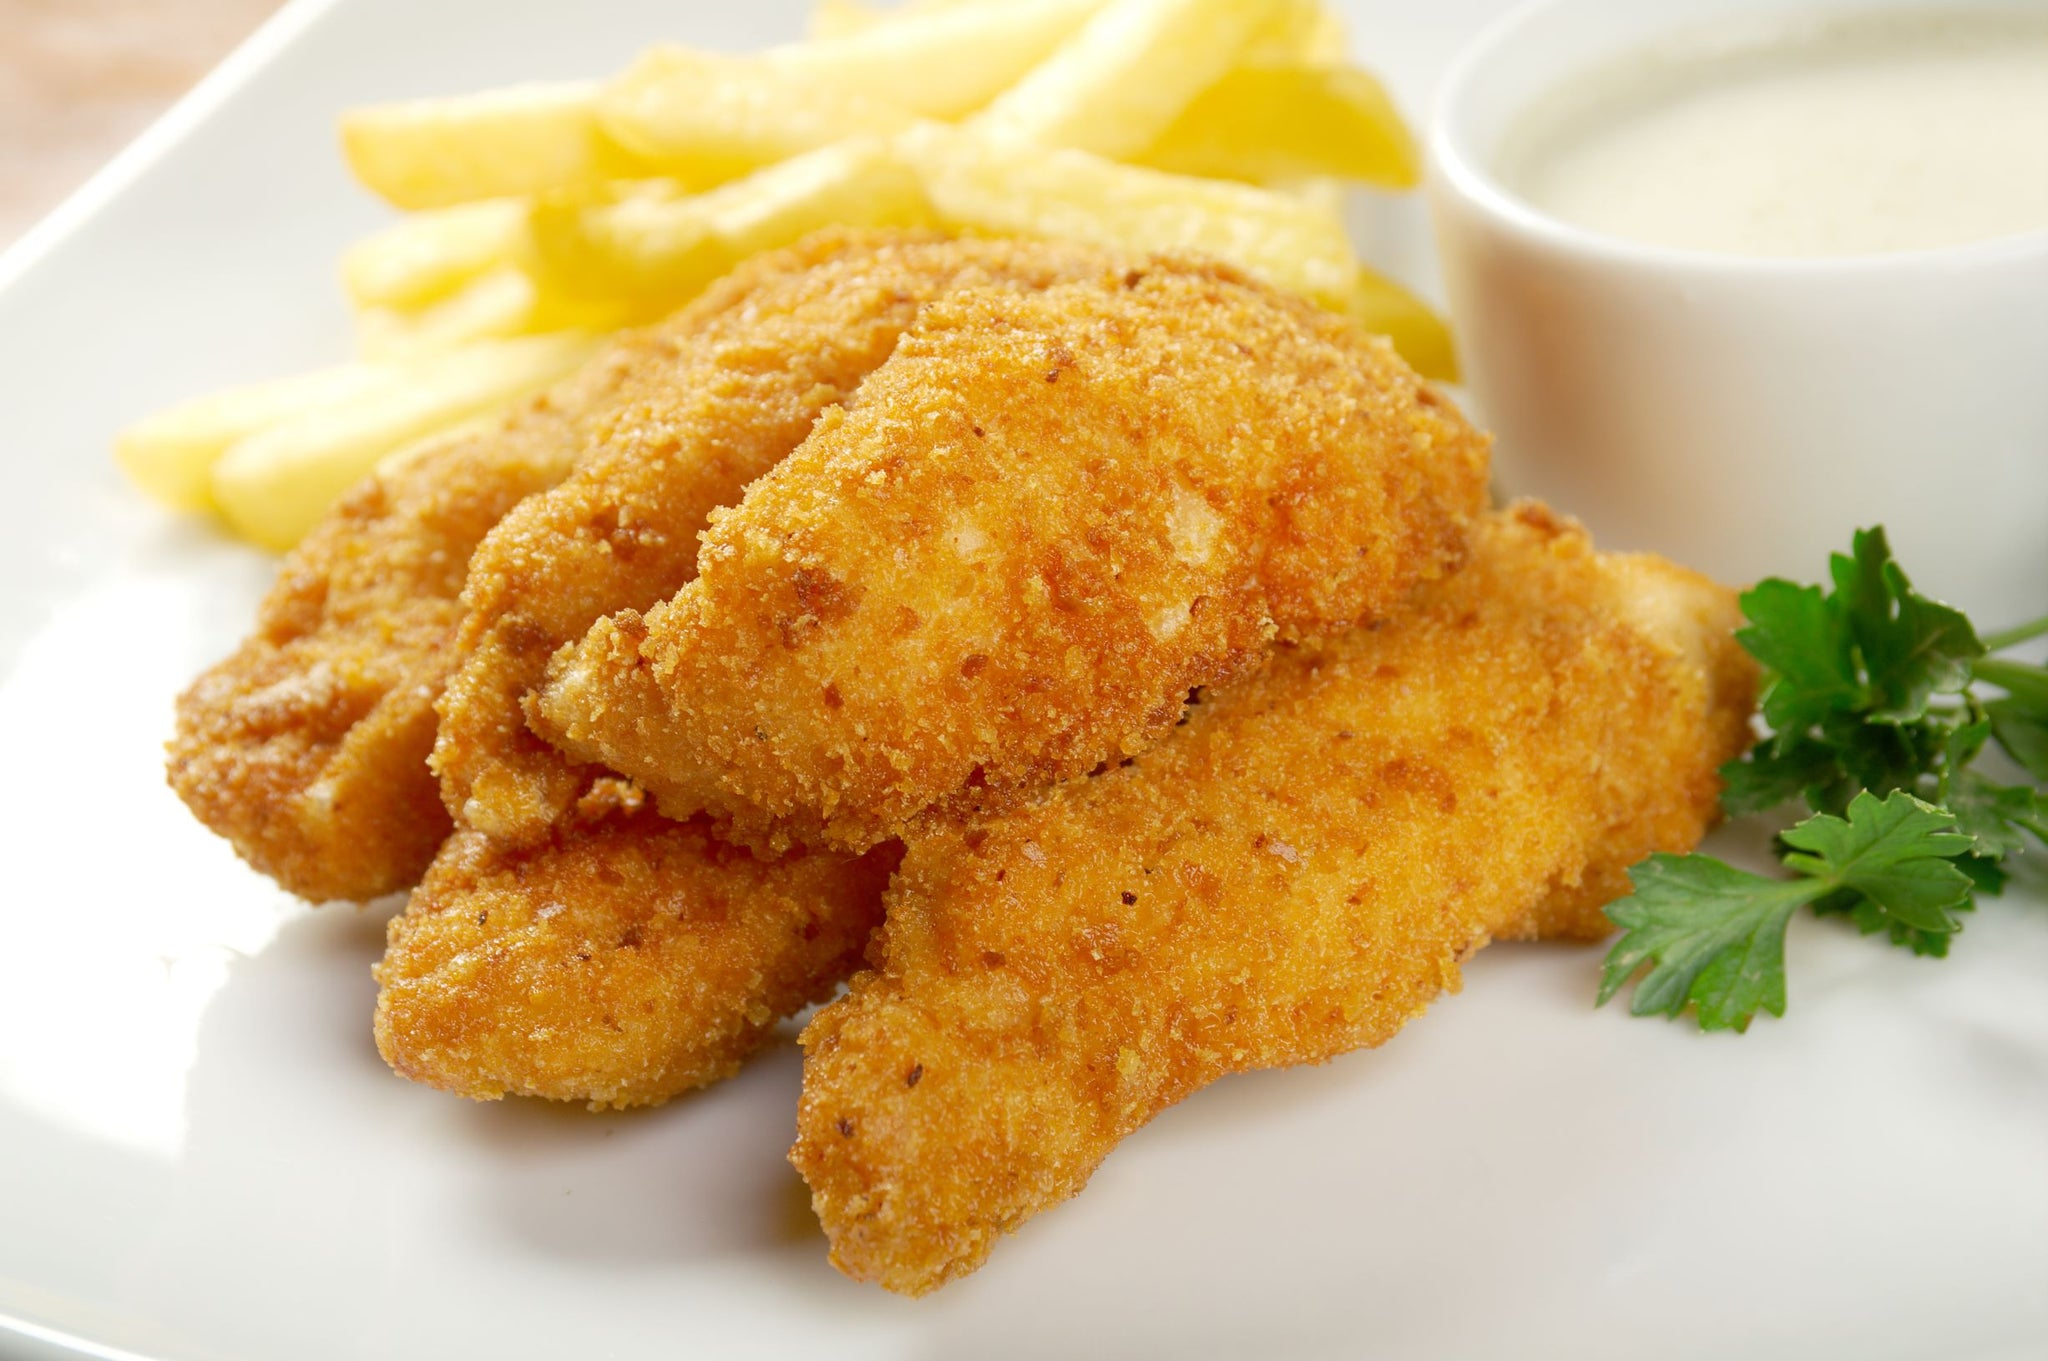 Sysco Classic Frozen Wave Chicken Finger 2 kg - 2 Pack [$16.25/kg]